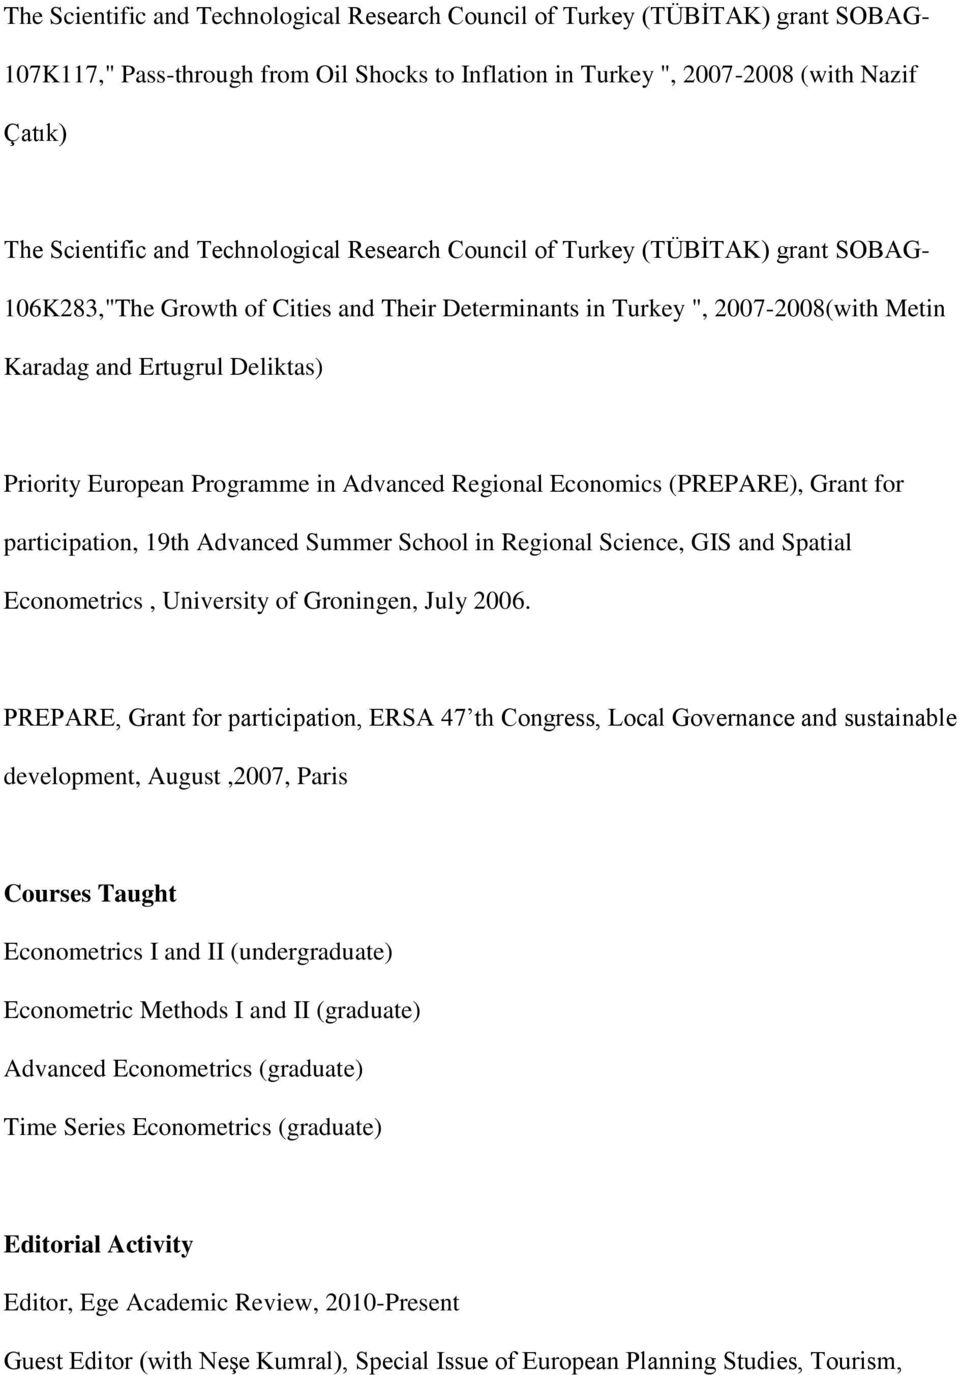 Programme in Advanced Regional Economics (PREPARE), Grant for participation, 19th Advanced Summer School in Regional Science, GIS and Spatial Econometrics, University of Groningen, July 2006.